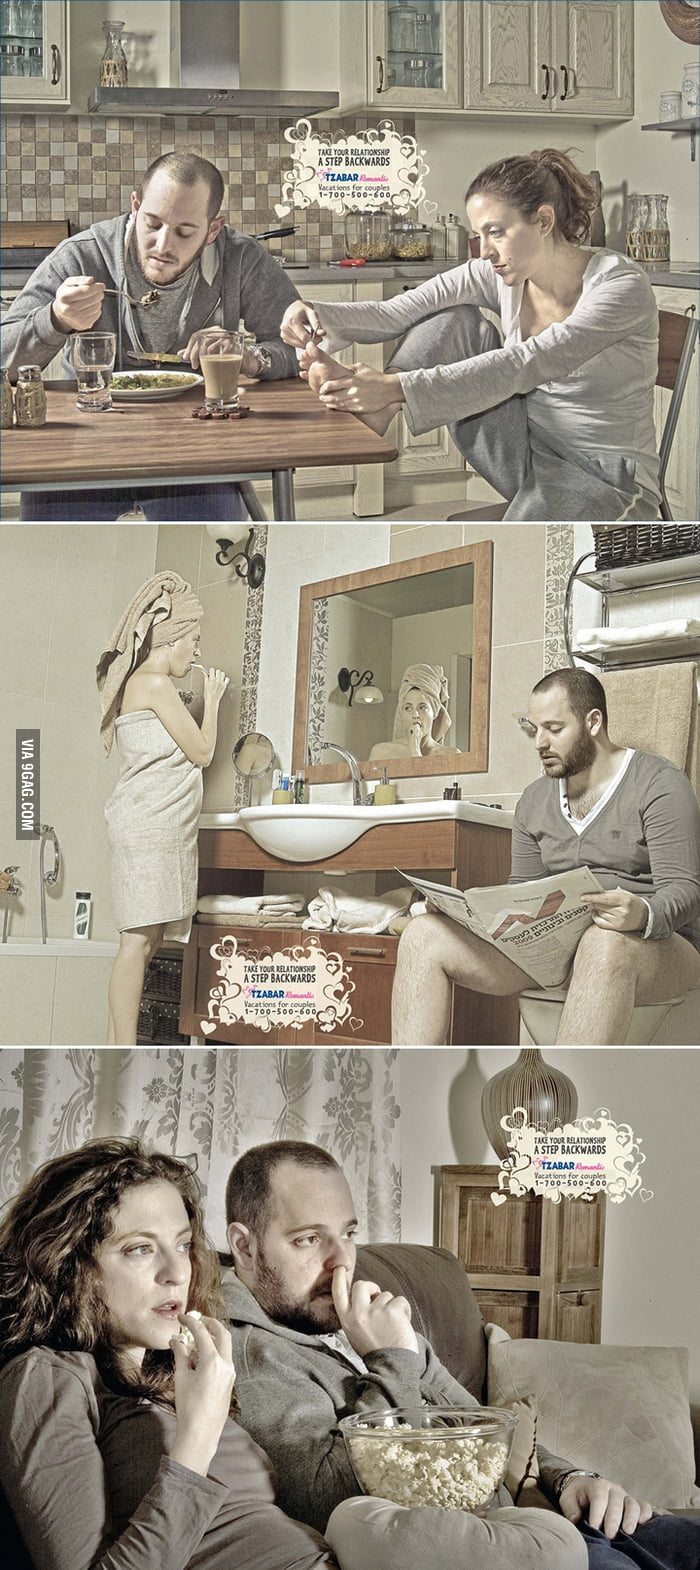 Creative ad: Take your relationship a step backwards